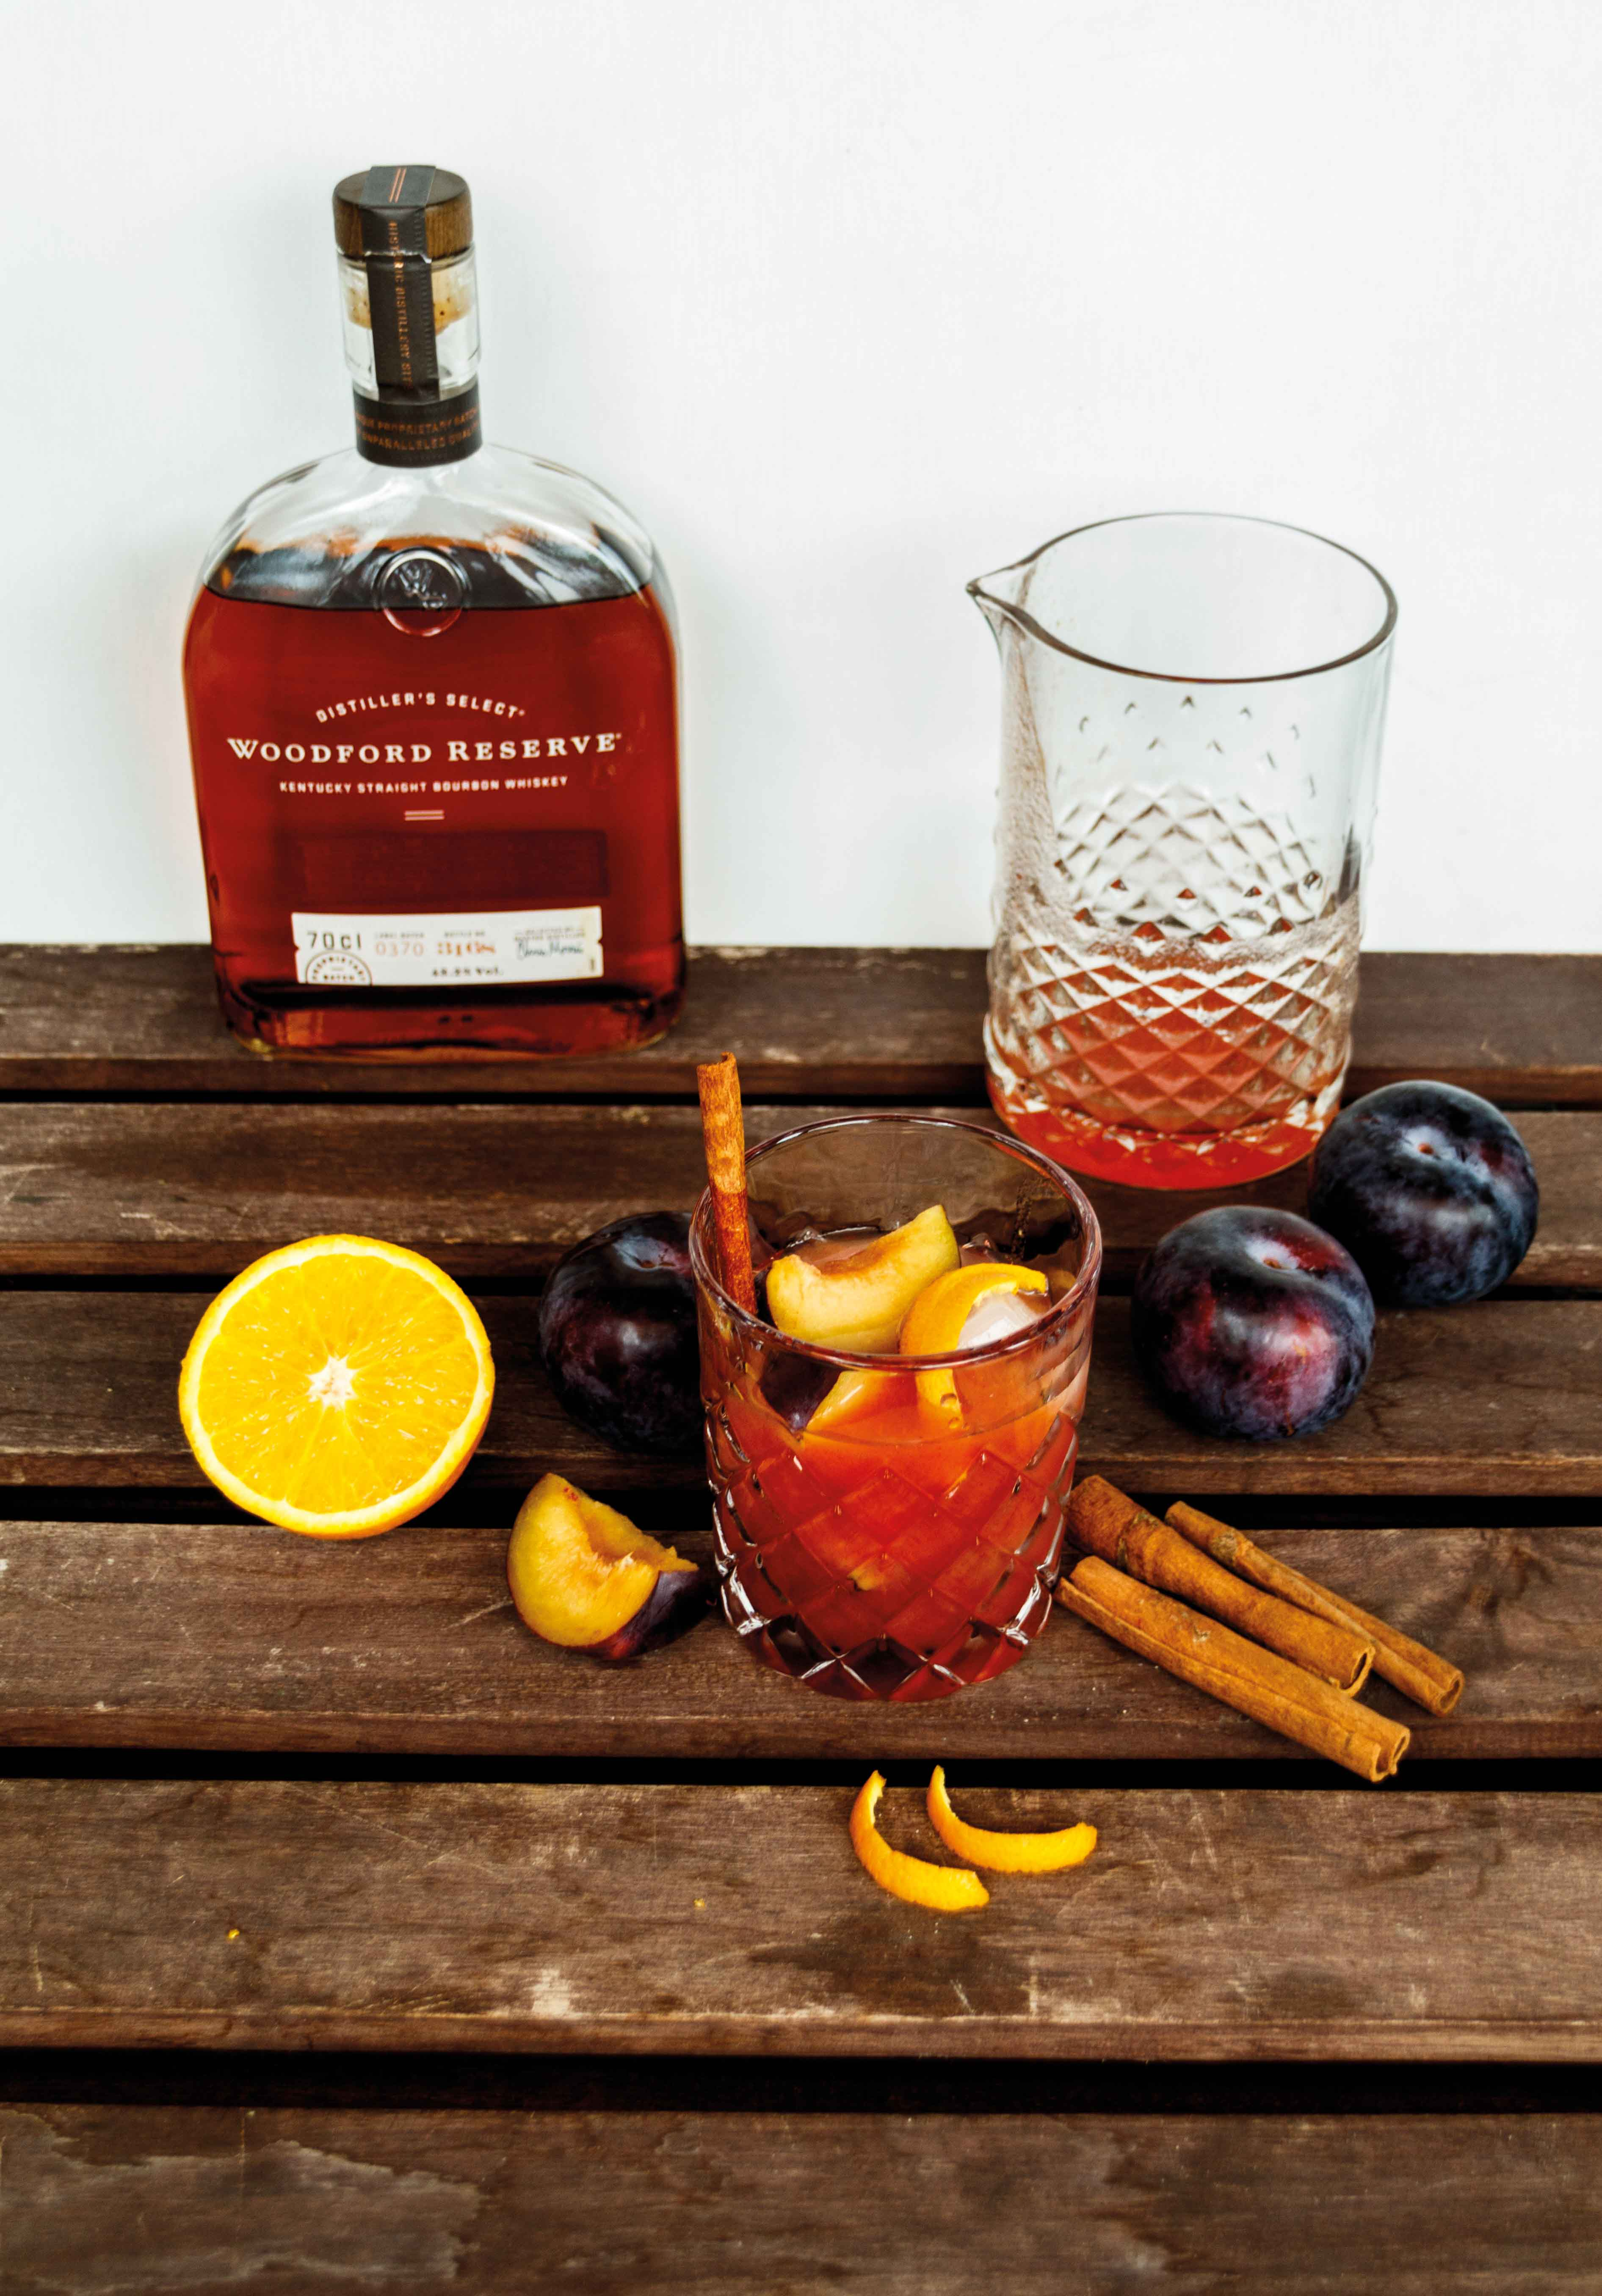 Herbstlicher Whiskey Smash mit Pflaumen und Woodford Reserve // Whiskey Plum Smash by http://babyrockmyday.com/whiskey-smash-mit-pflaumen/1